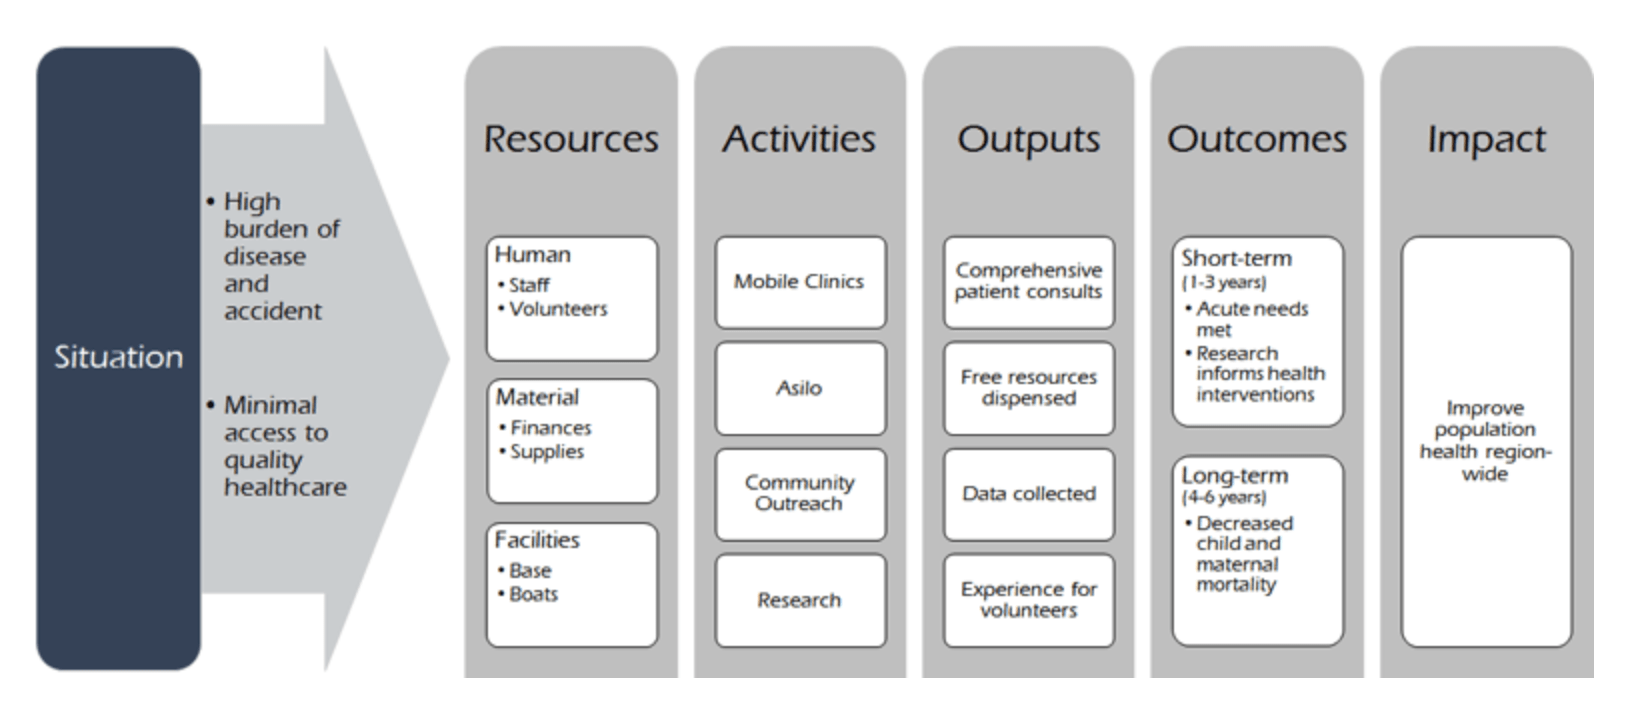 Logic Model of Our Vision